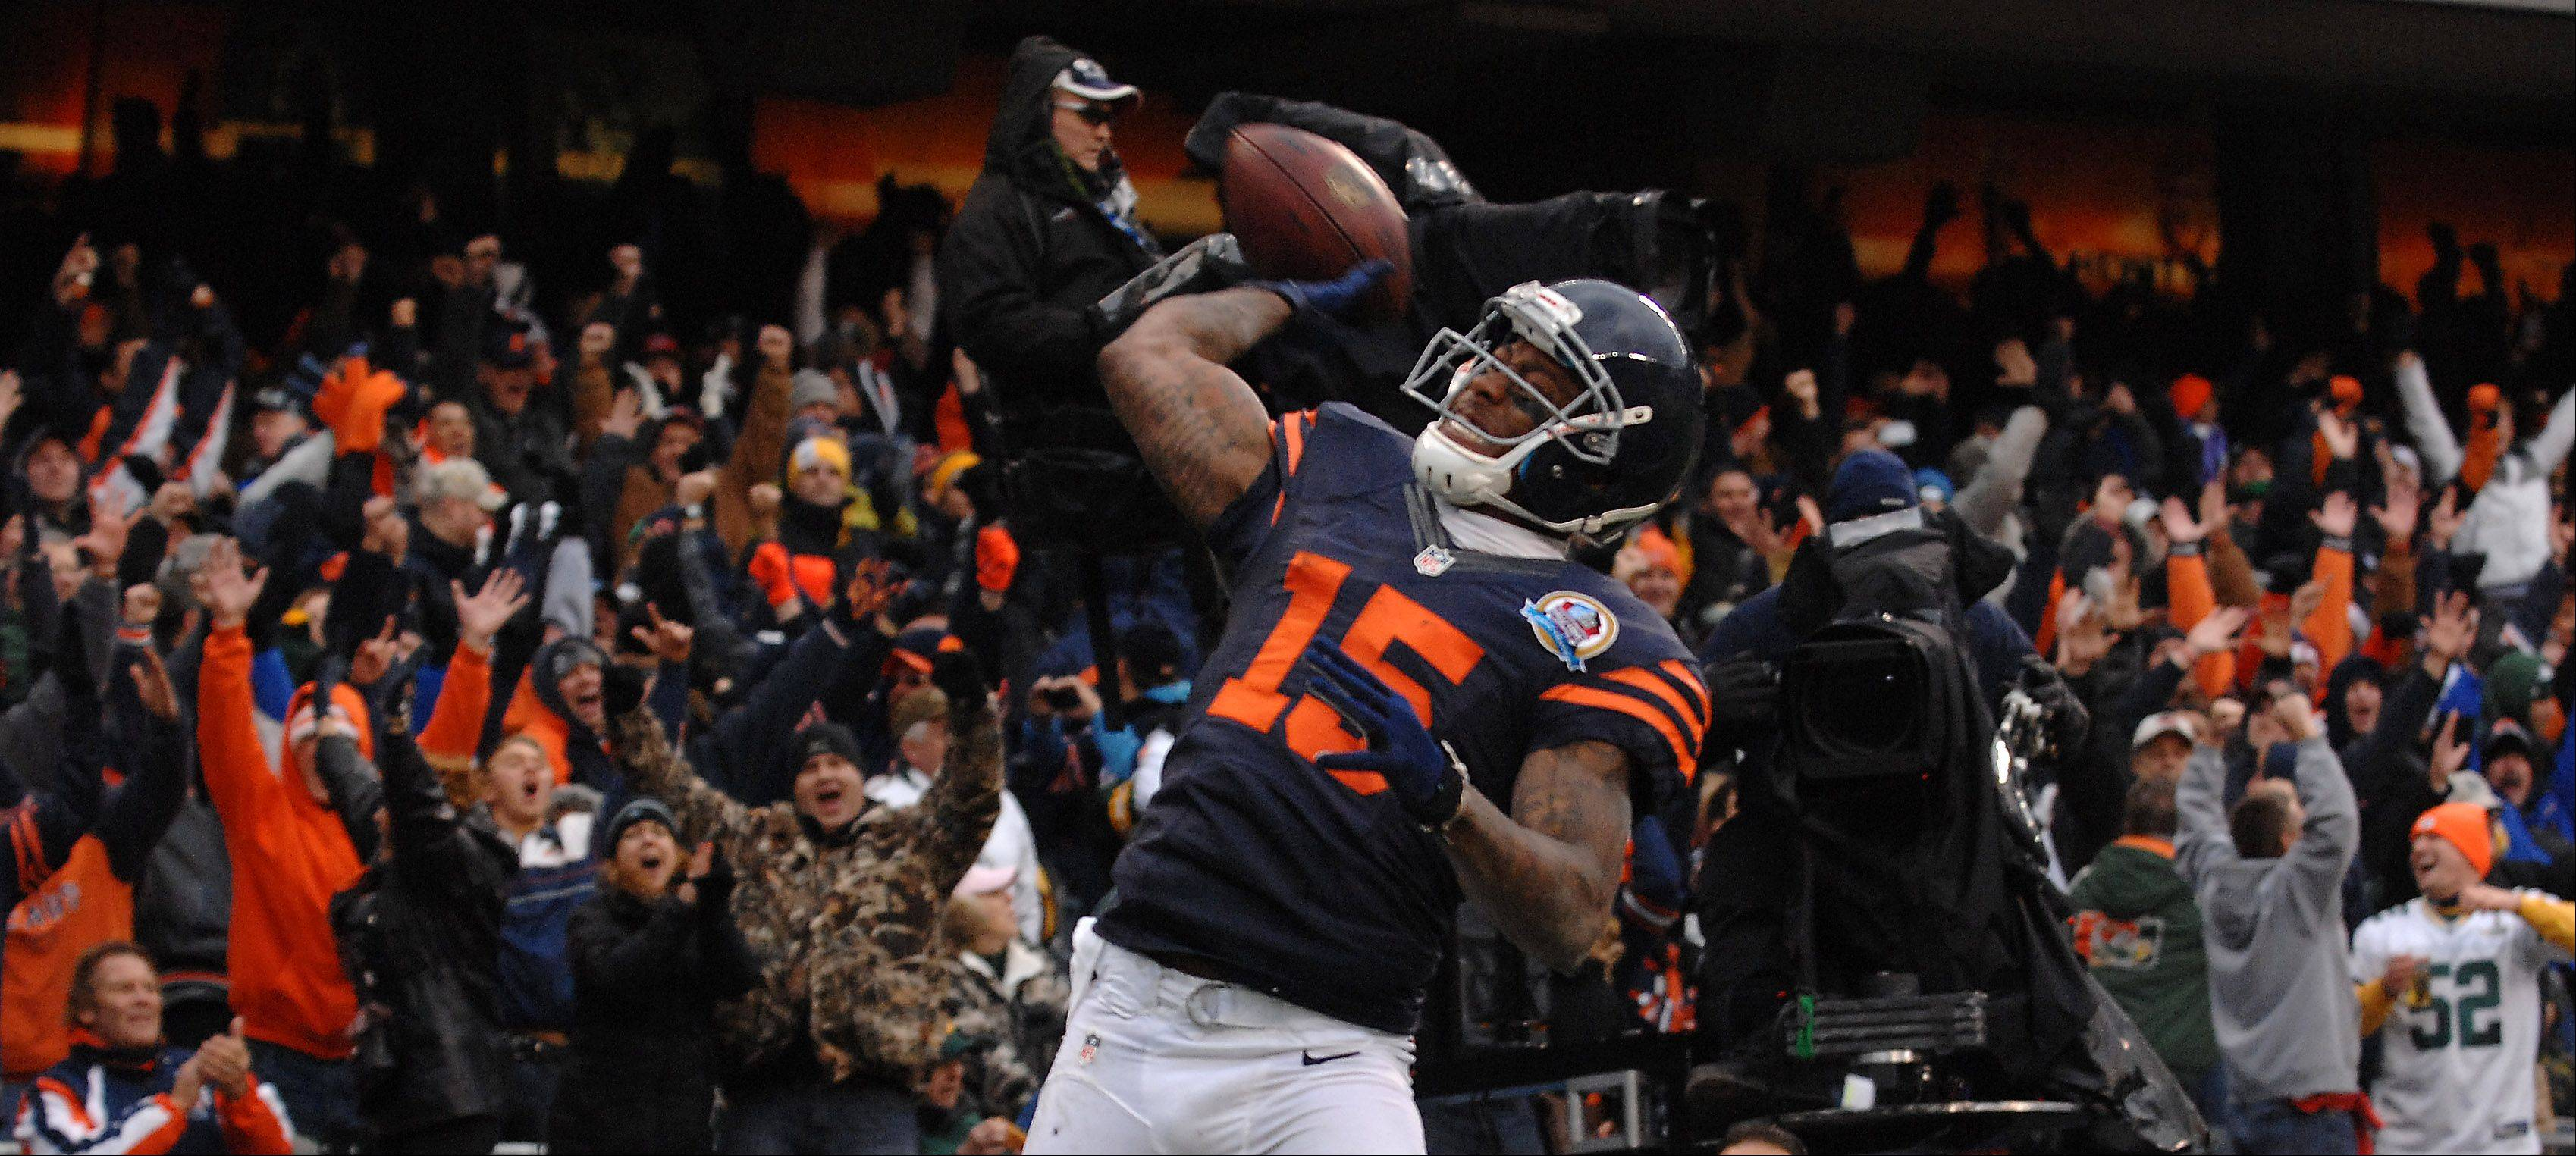 Rick West/rwest@dailyherald.com � Chicago Bears wide receiver Brandon Marshall (15) throws the ball into the stands after his second quarter touchdown reception during Sunday's game at Soldier Field in Chicago.